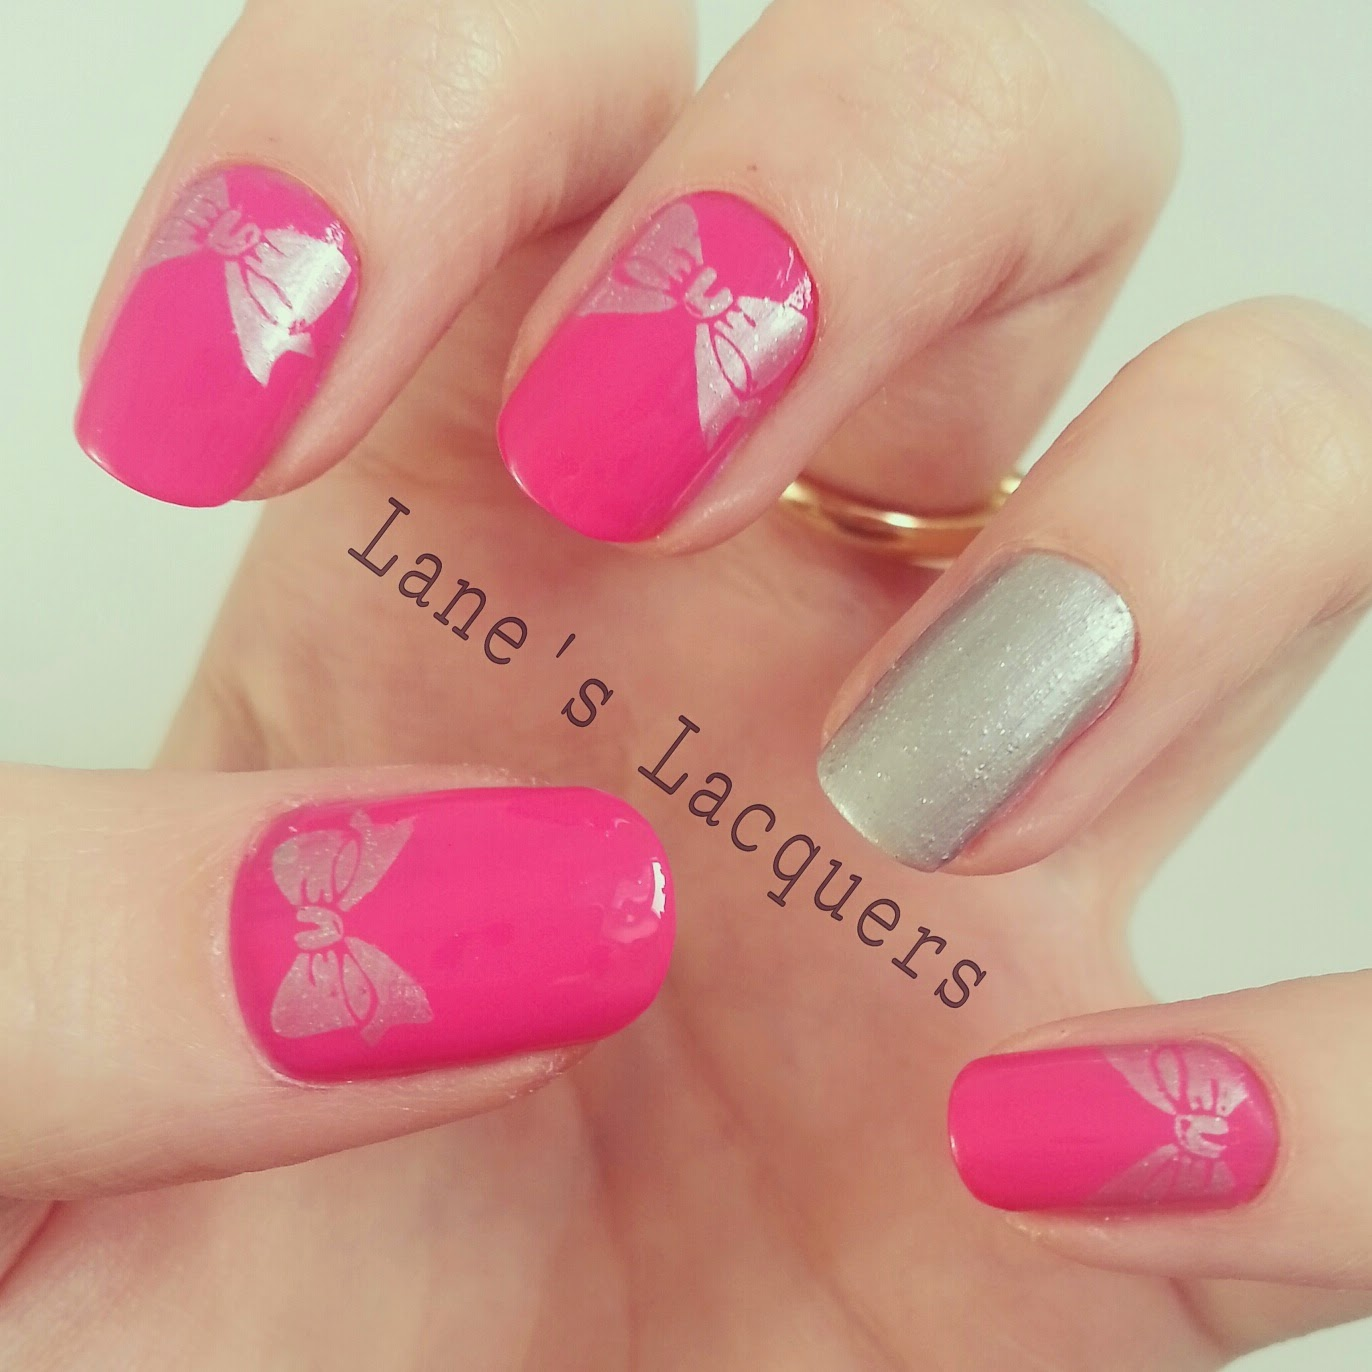 bows-nail-art-moyou-nails-105